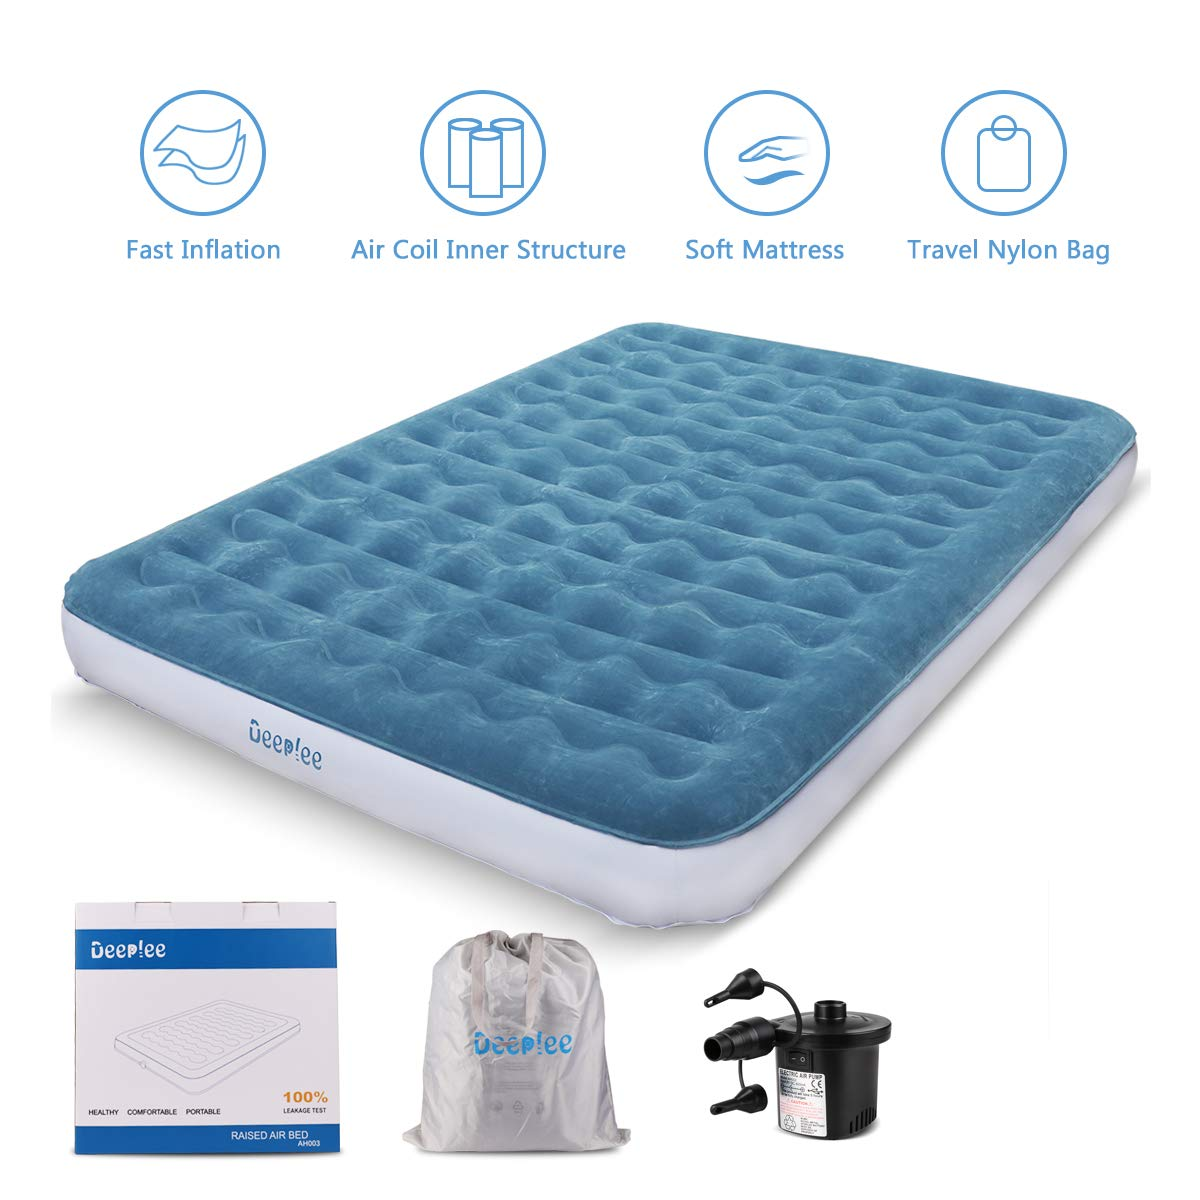 Deeplee Air Mattress Queen Size Blow up Airbed Inflatable Mattress with Air Pump for Home, Camping, Guest Bed, Height 9 inch, Storage Bag AH003